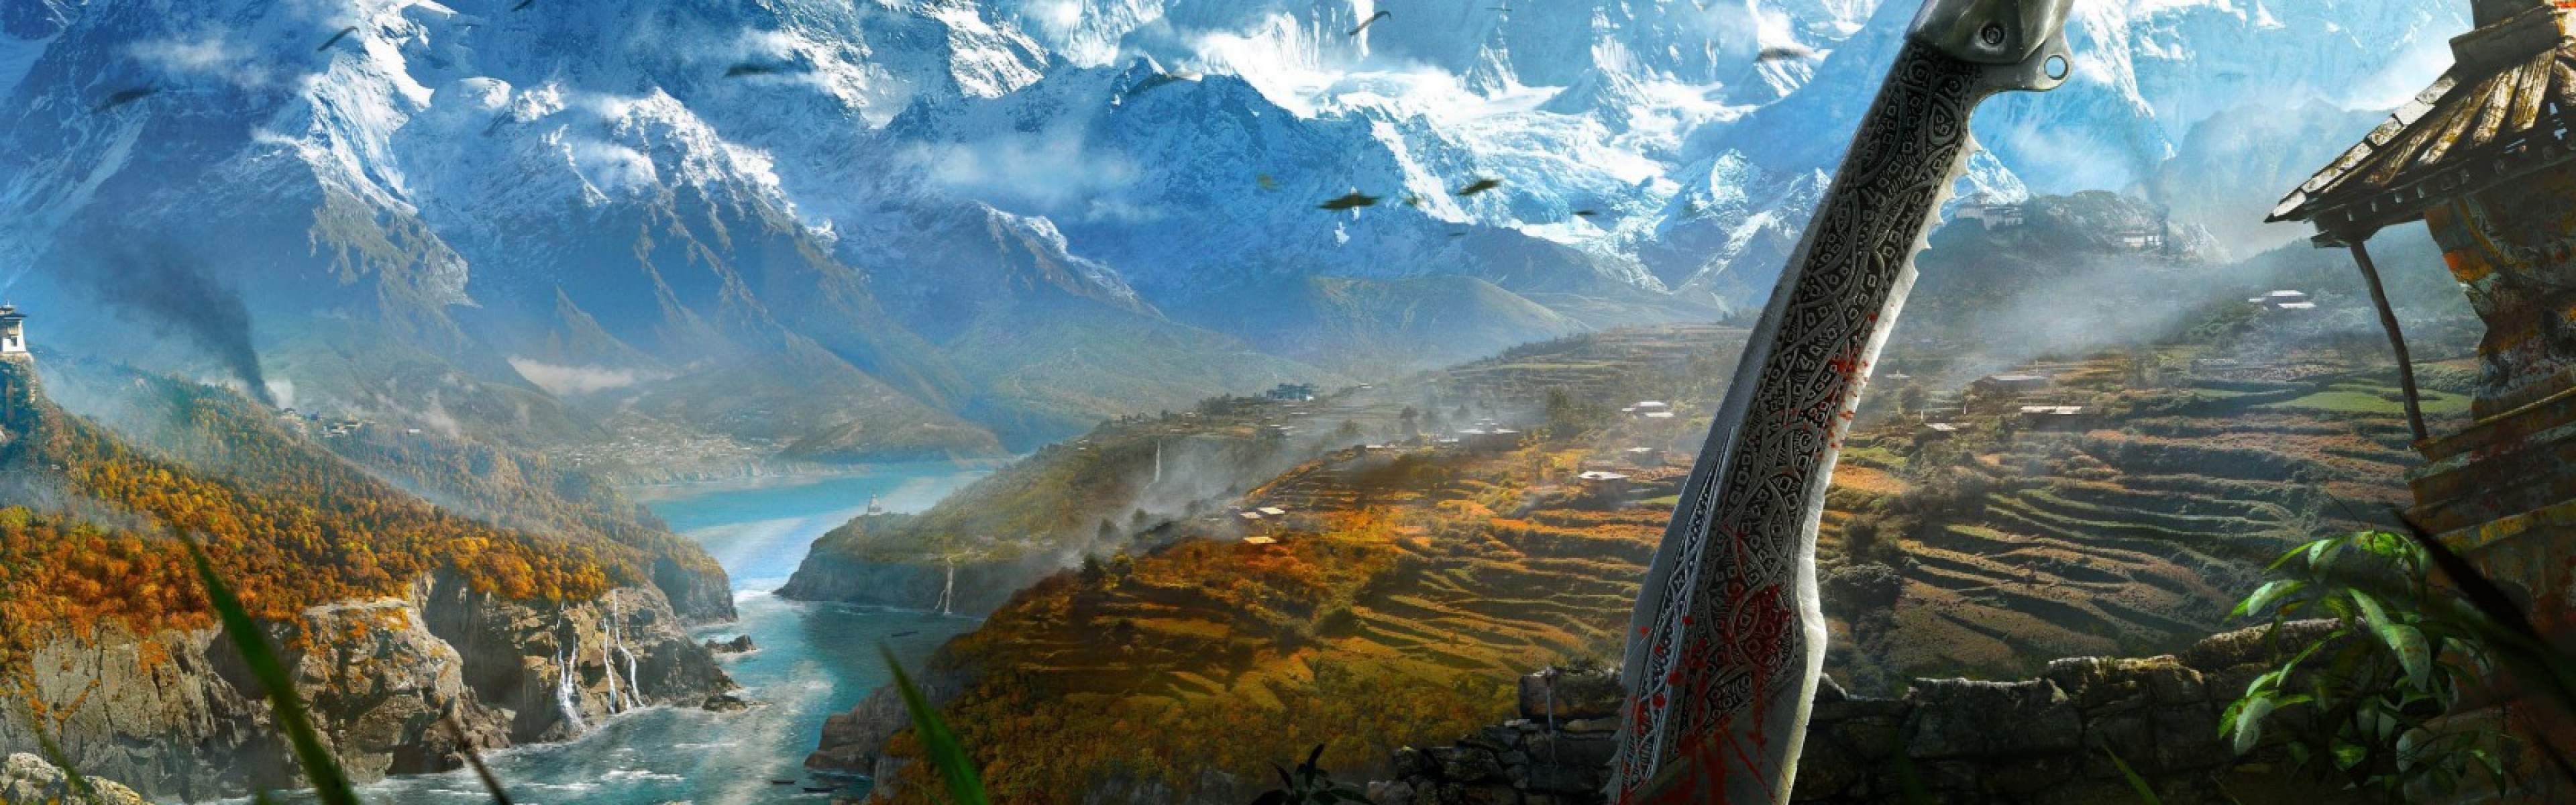 Far Cry 4 #292495 | Full HD Widescreen wallpapers for desktop download